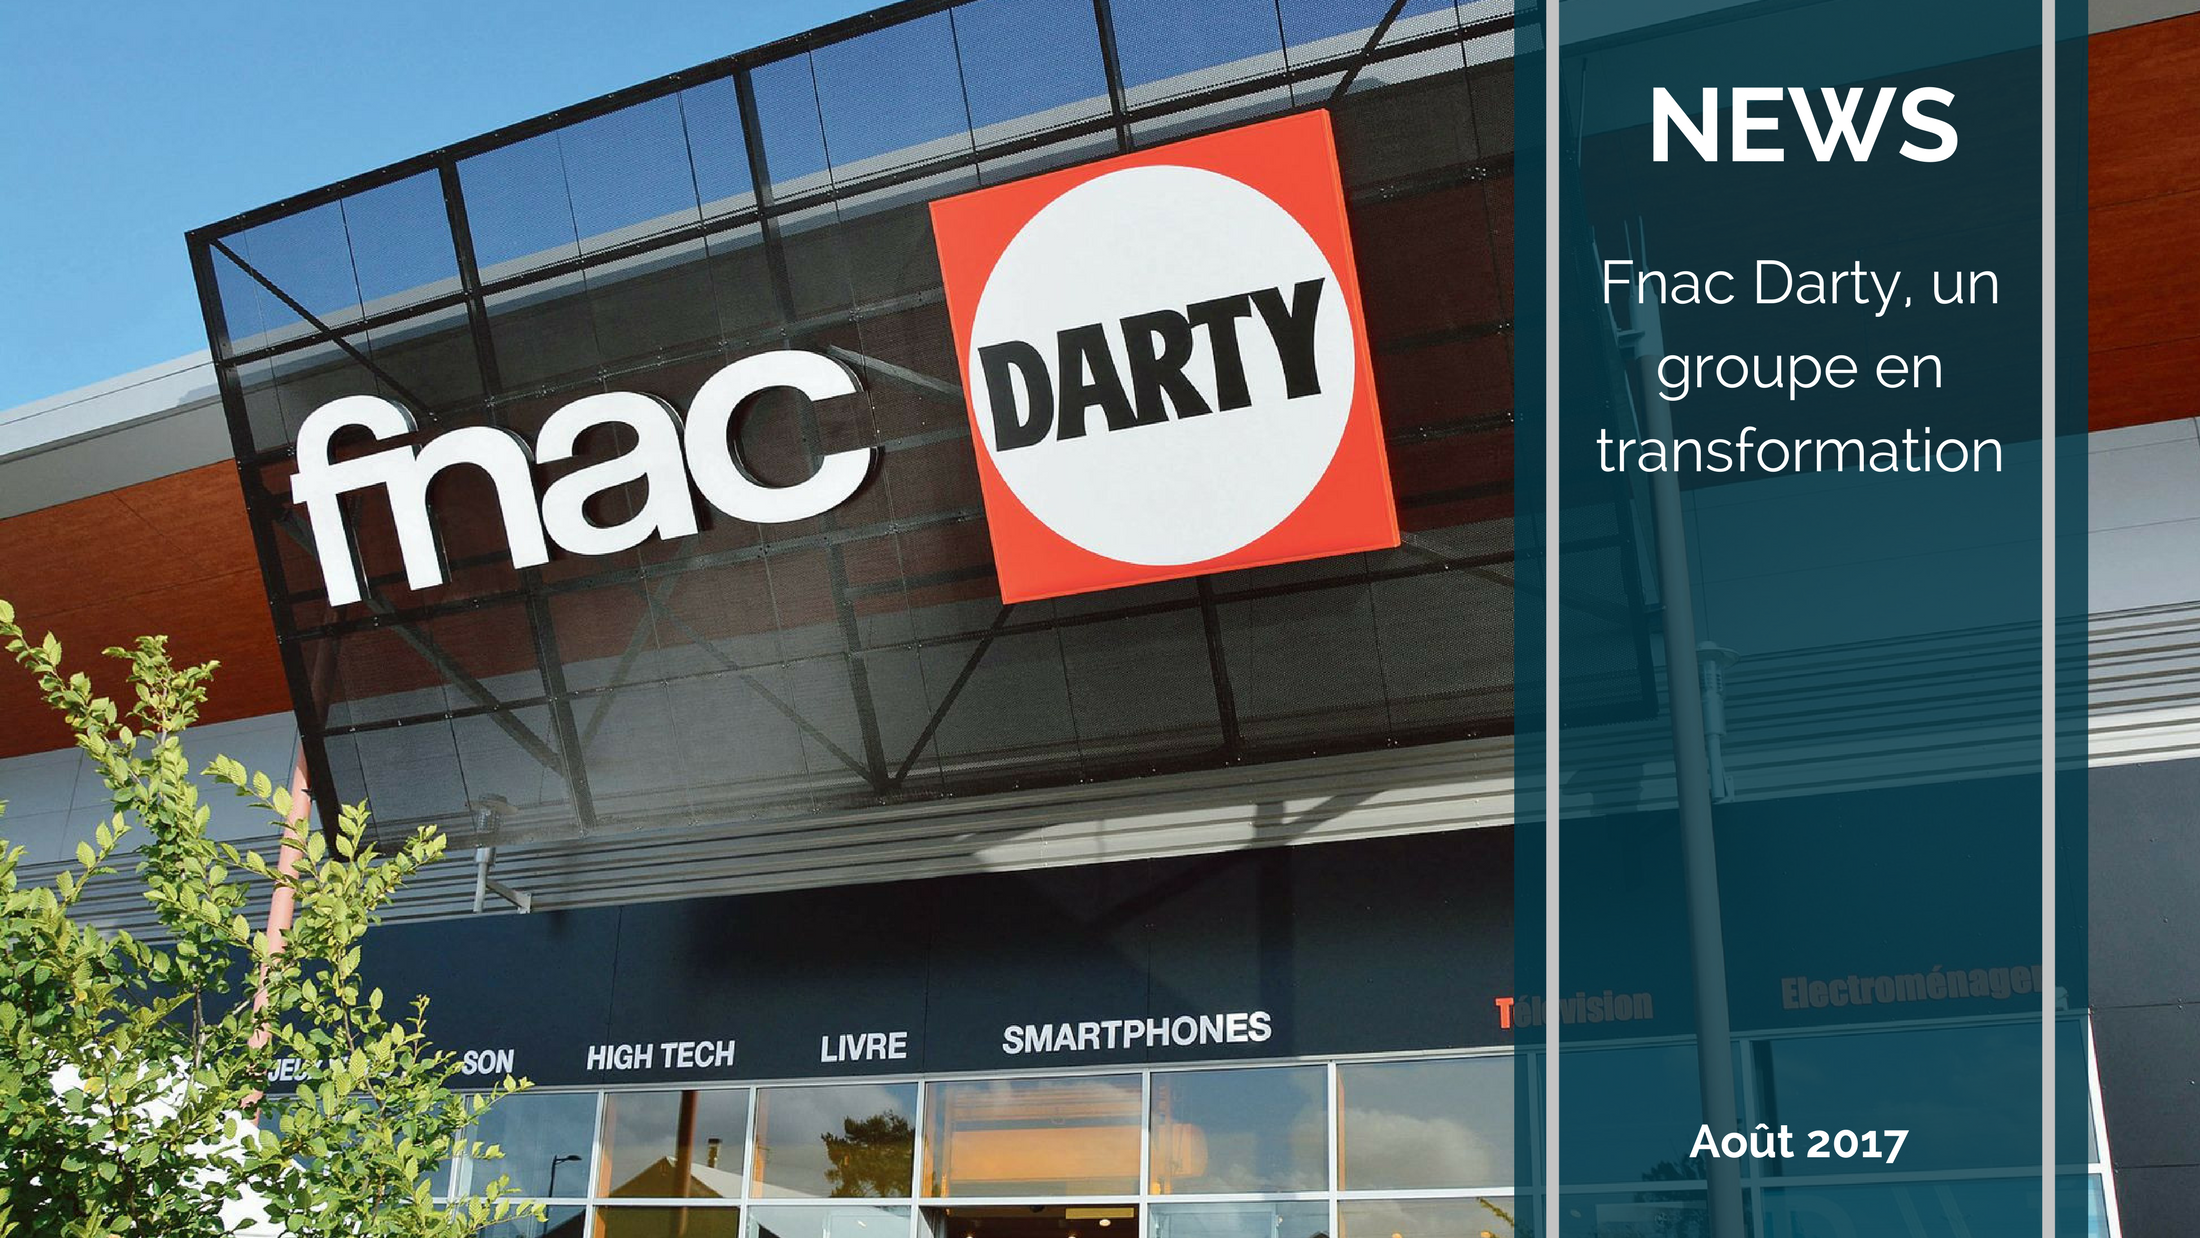 Trends News 18 - Fnac-Darty, un groupe en transformation